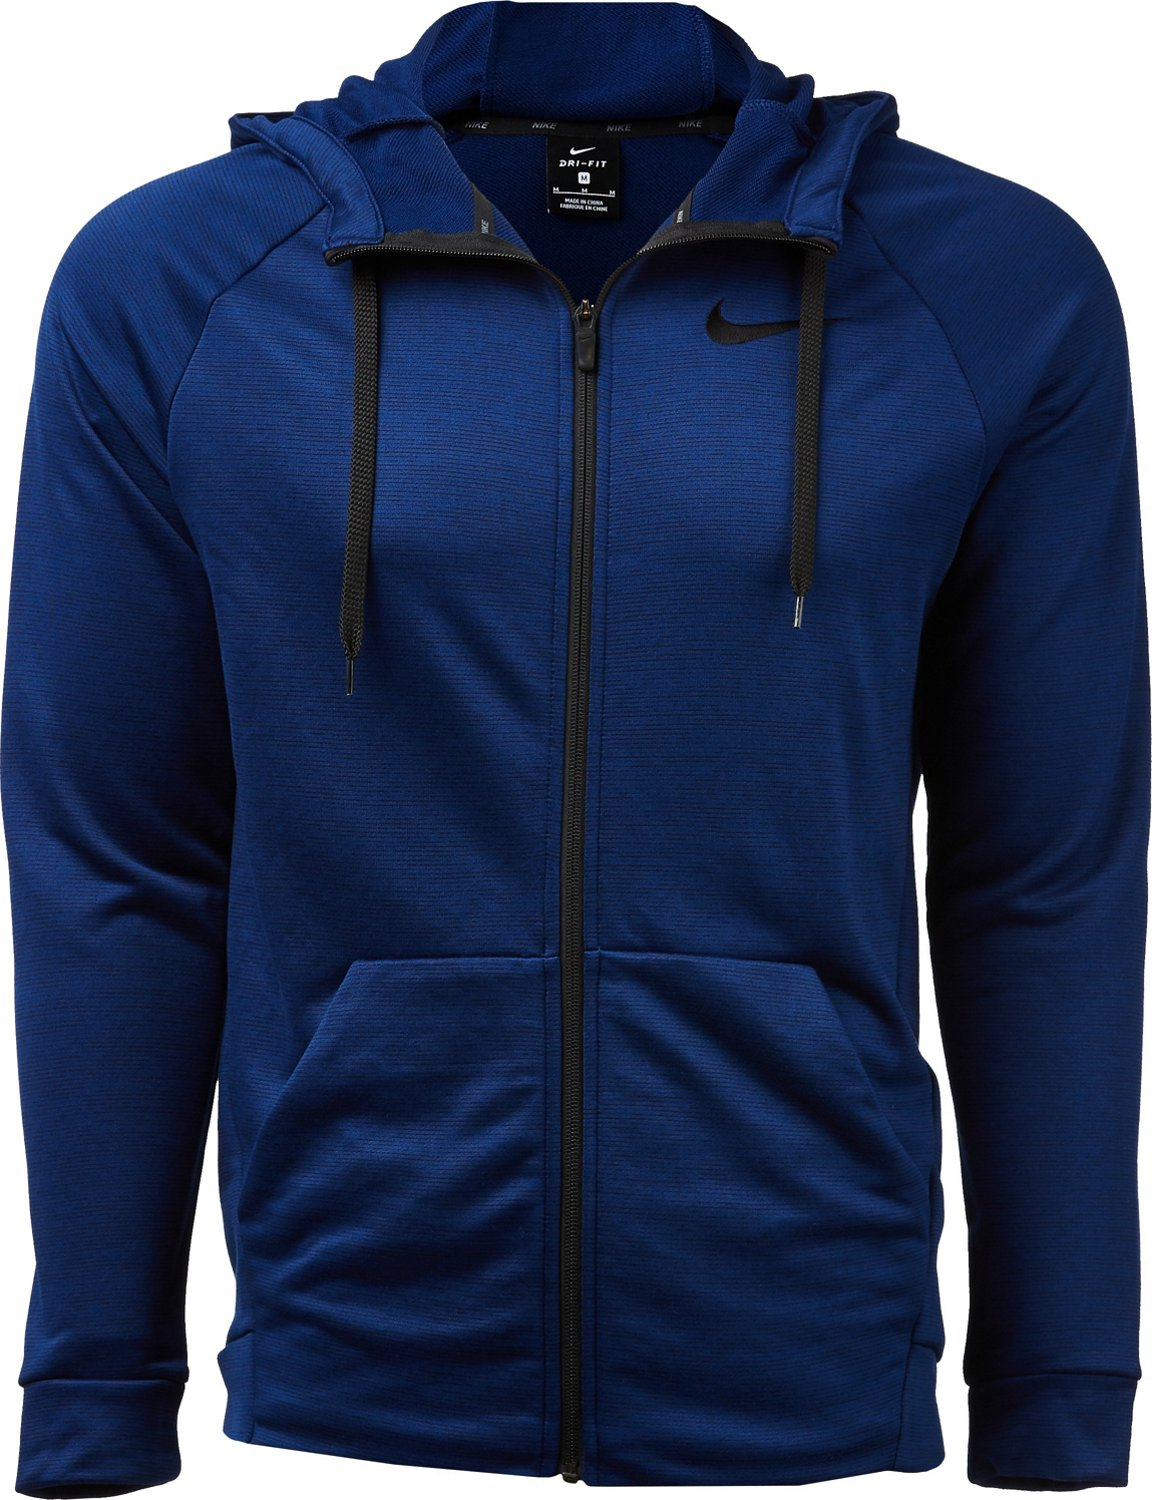 8a4988d6bdd4 Display product reviews for Nike Men s Dry Training Hoodie